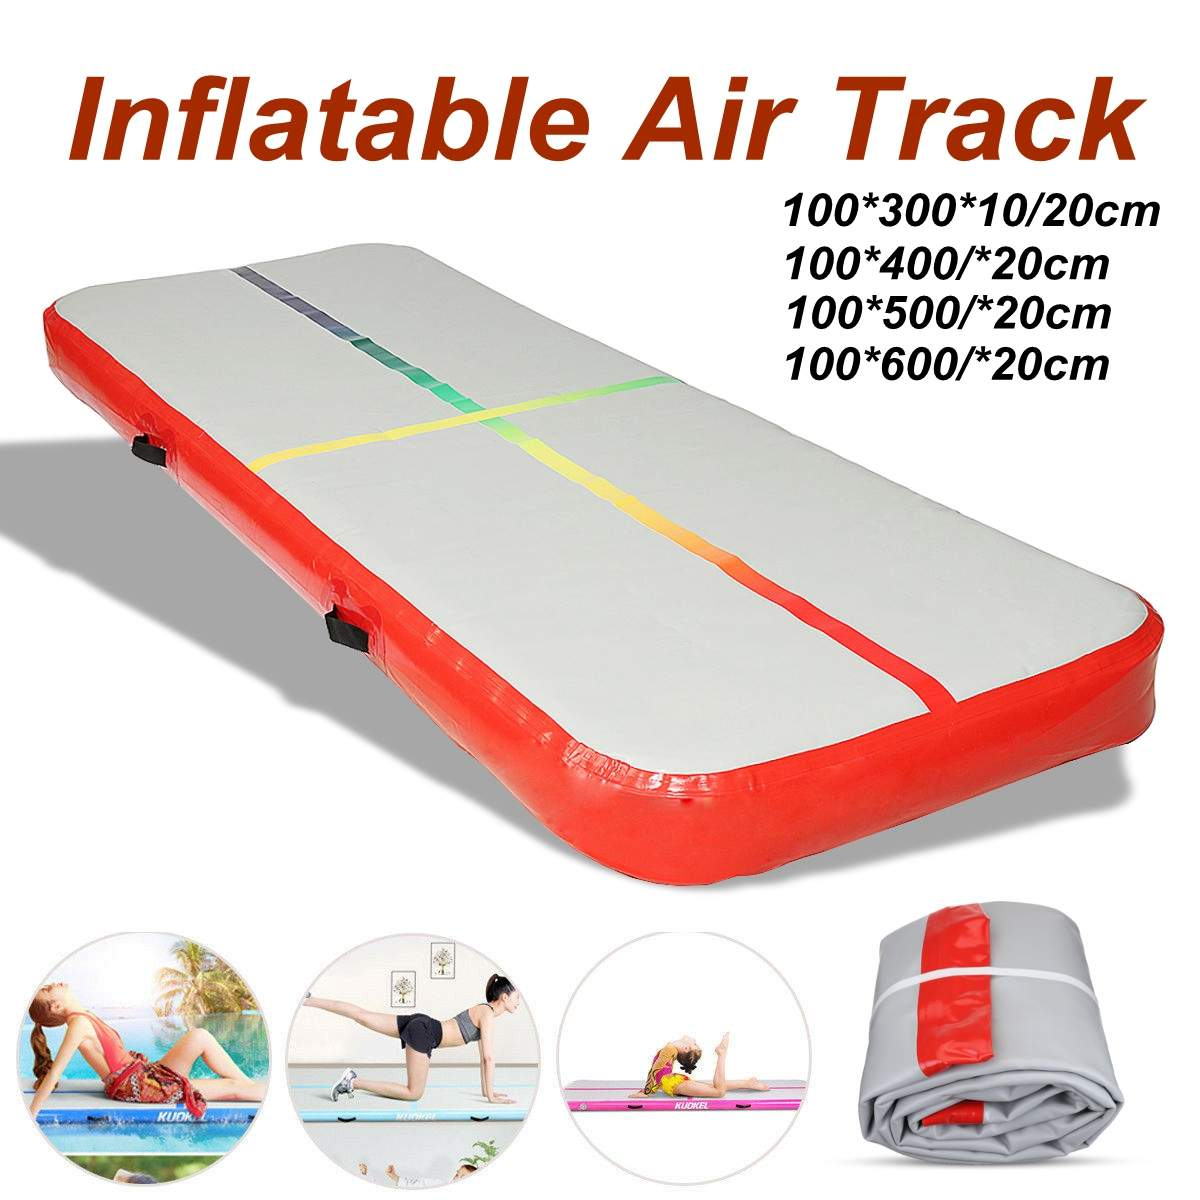 AirTrack Tumbling Air Track Inflatable Gymnastics Floor Trampoline Electric Air Pump for Home Use/Training/Cheerleading/BeachAirTrack Tumbling Air Track Inflatable Gymnastics Floor Trampoline Electric Air Pump for Home Use/Training/Cheerleading/Beach